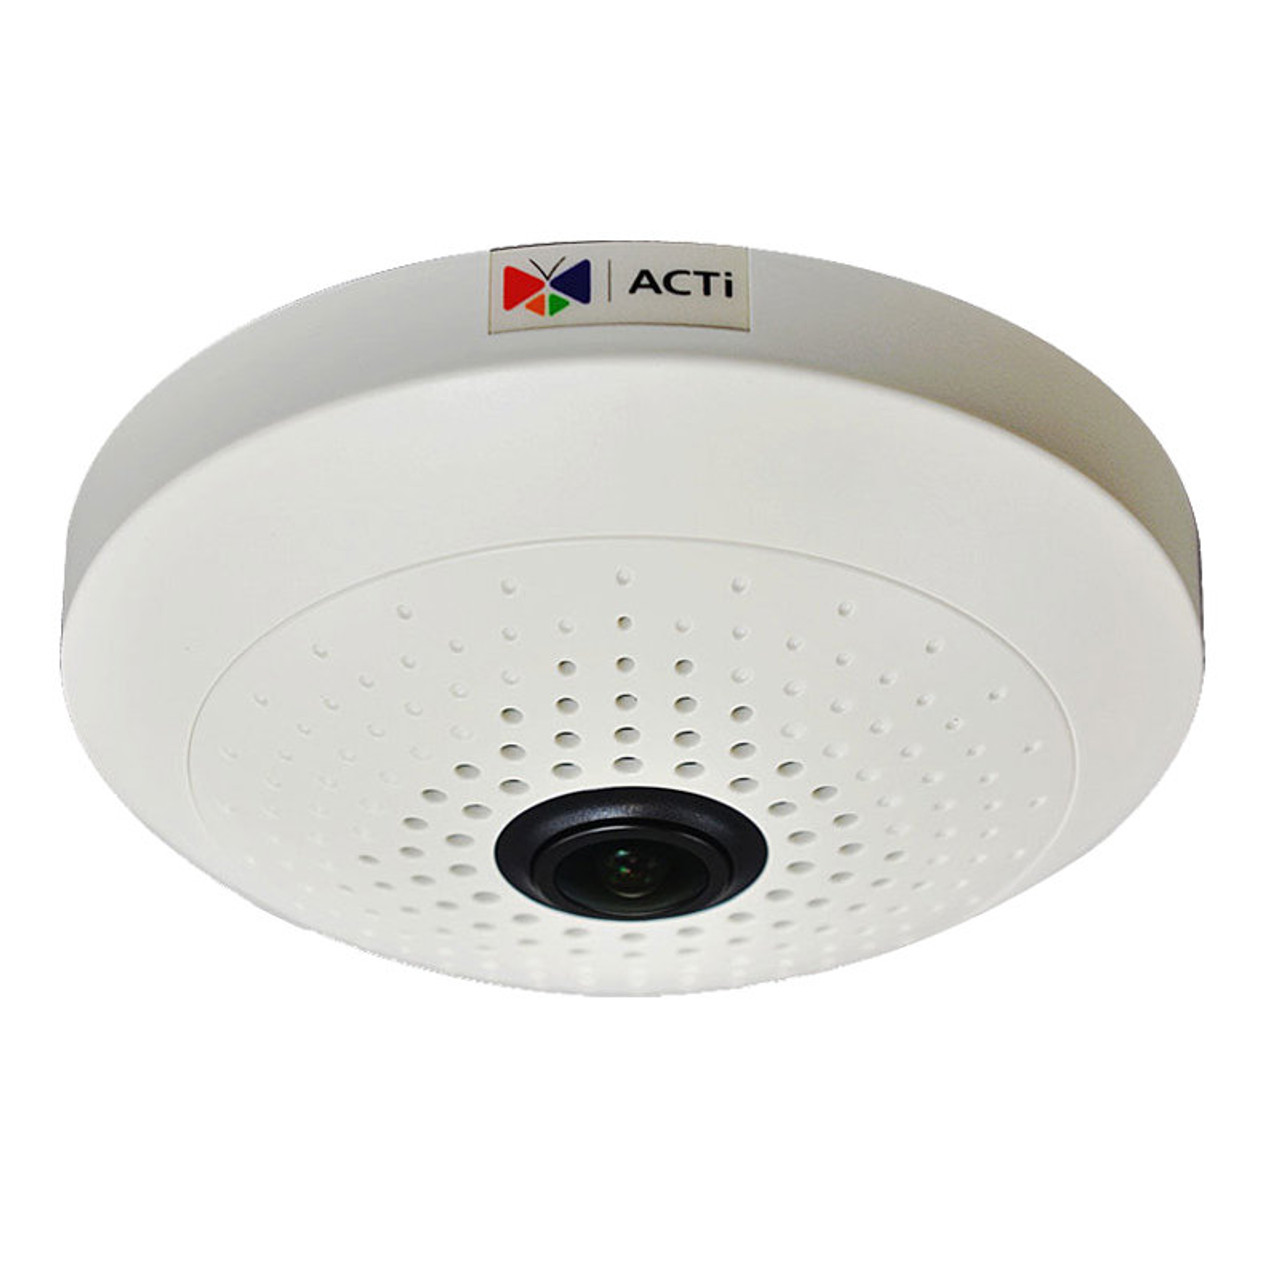 ACTi B55 10MP 360-degree Fisheye Dome IP Security Camera